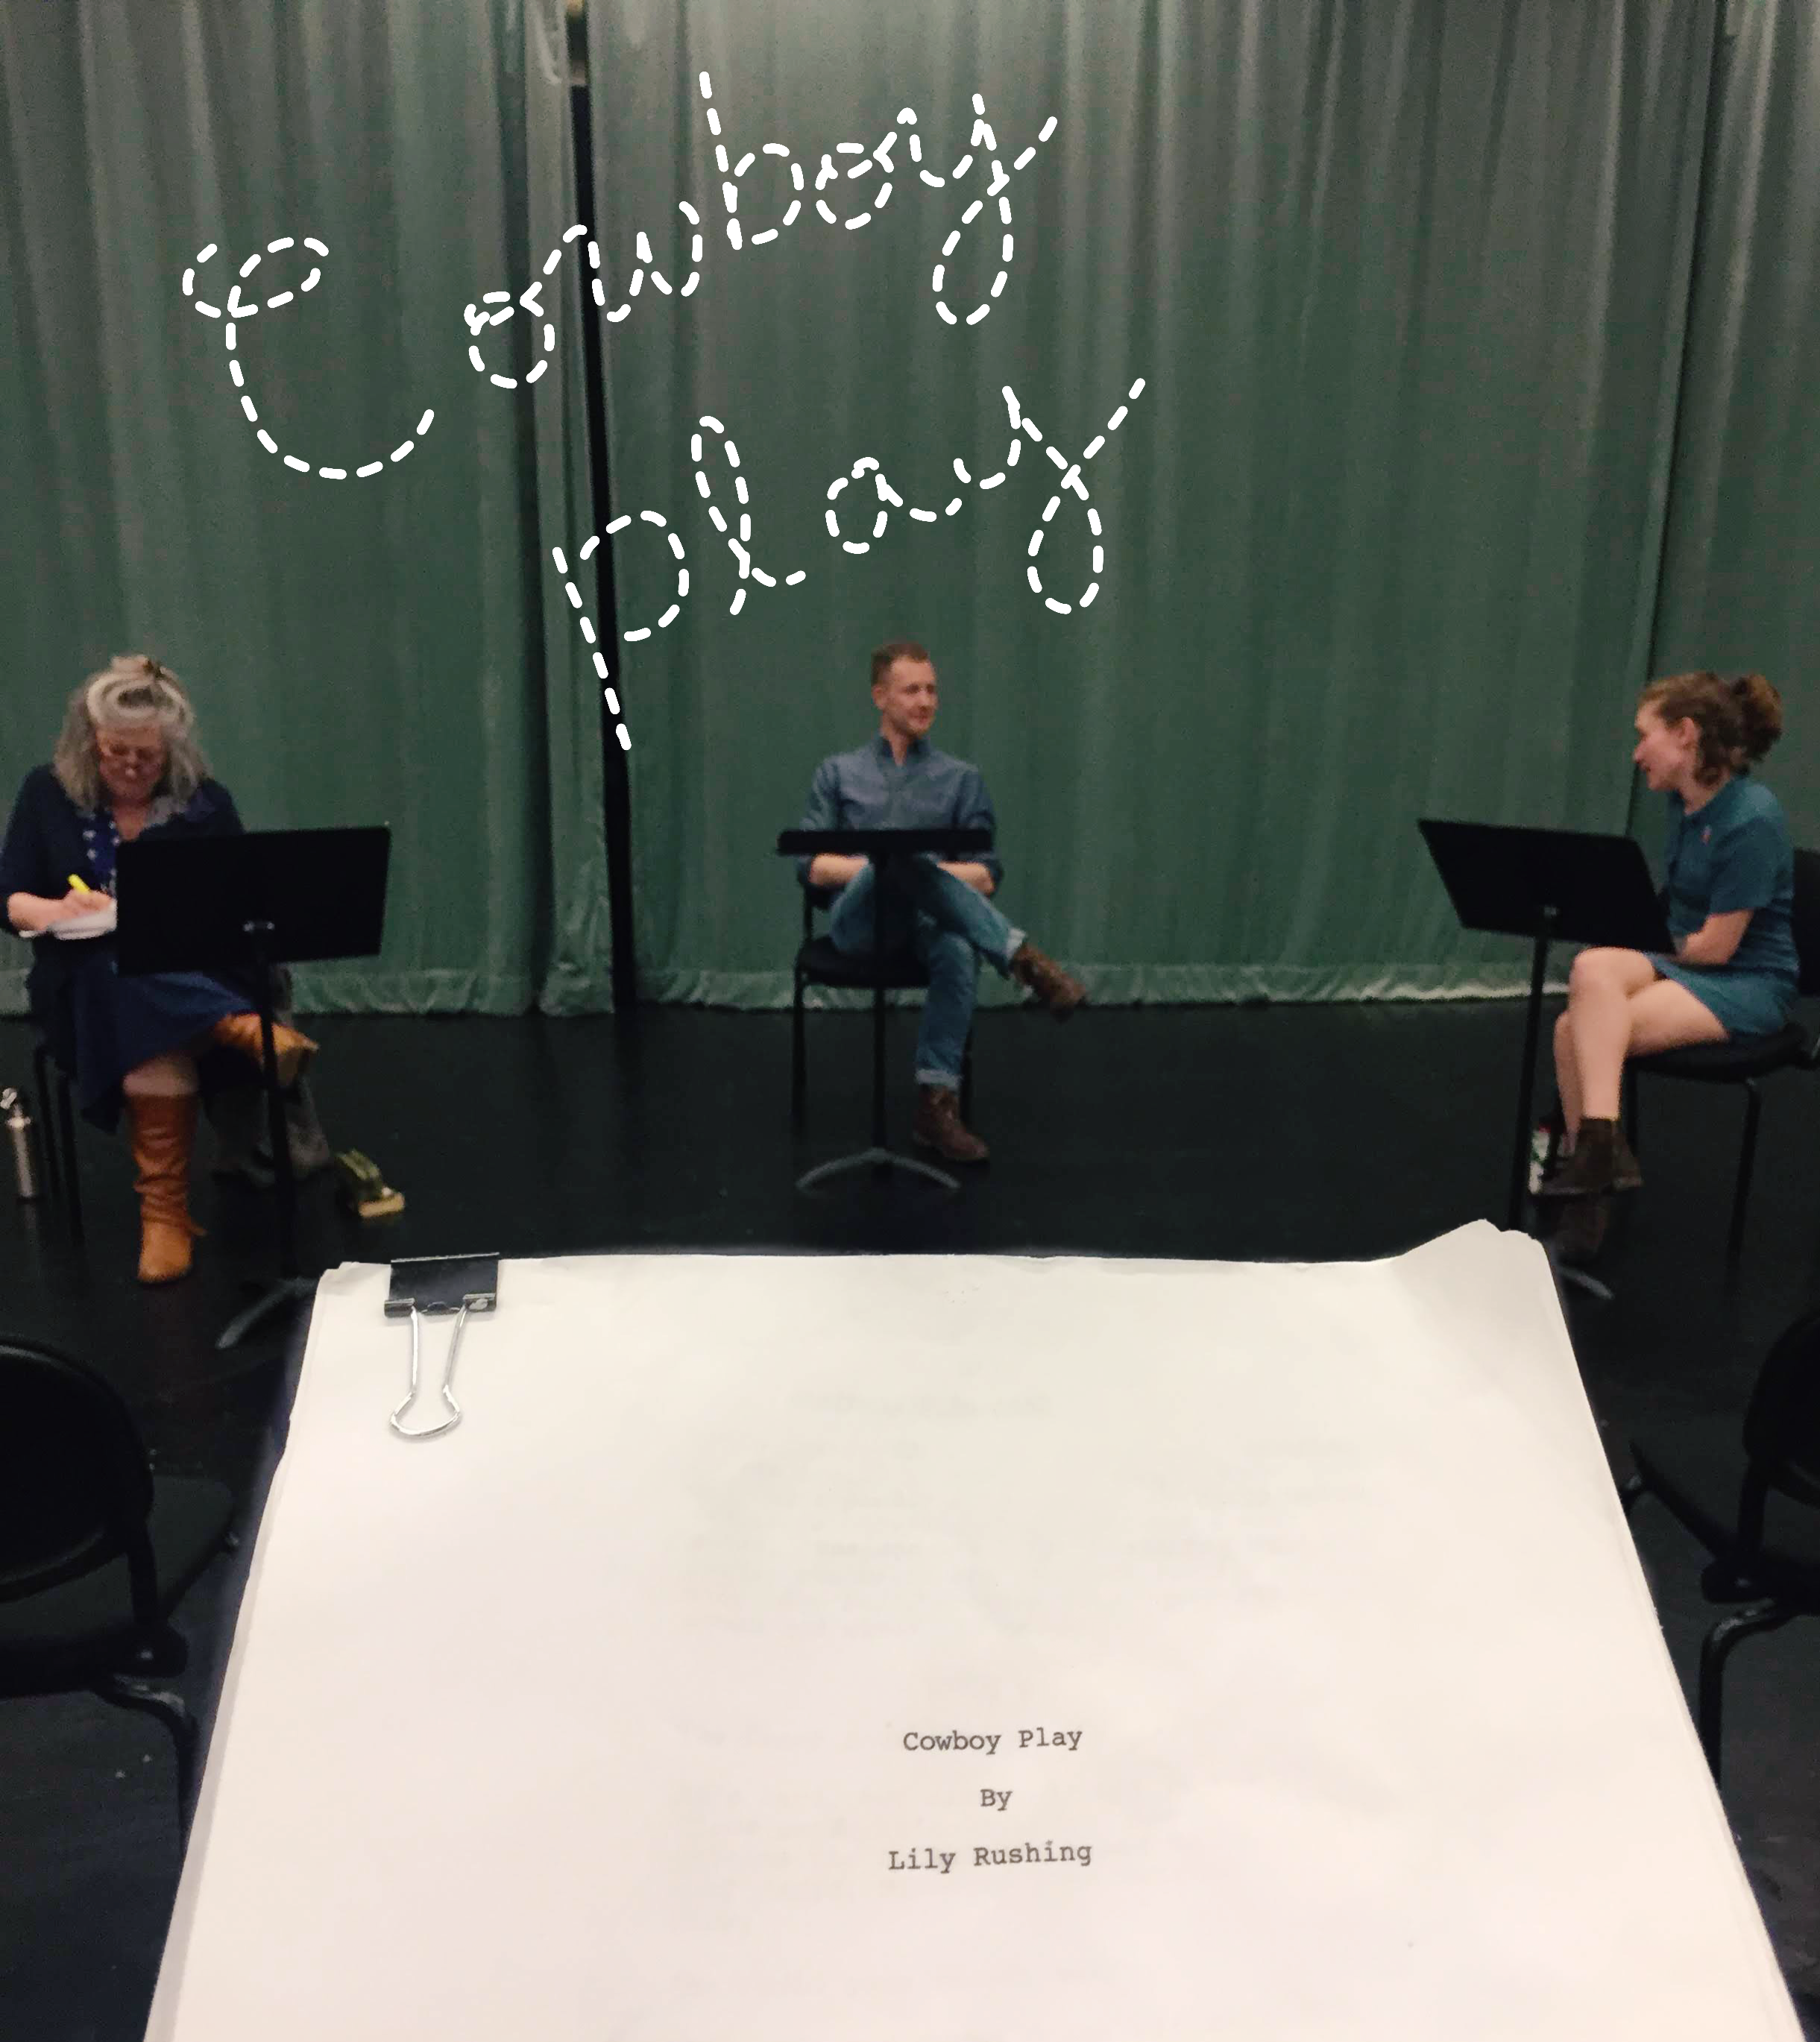 Reading of Cowboy Play